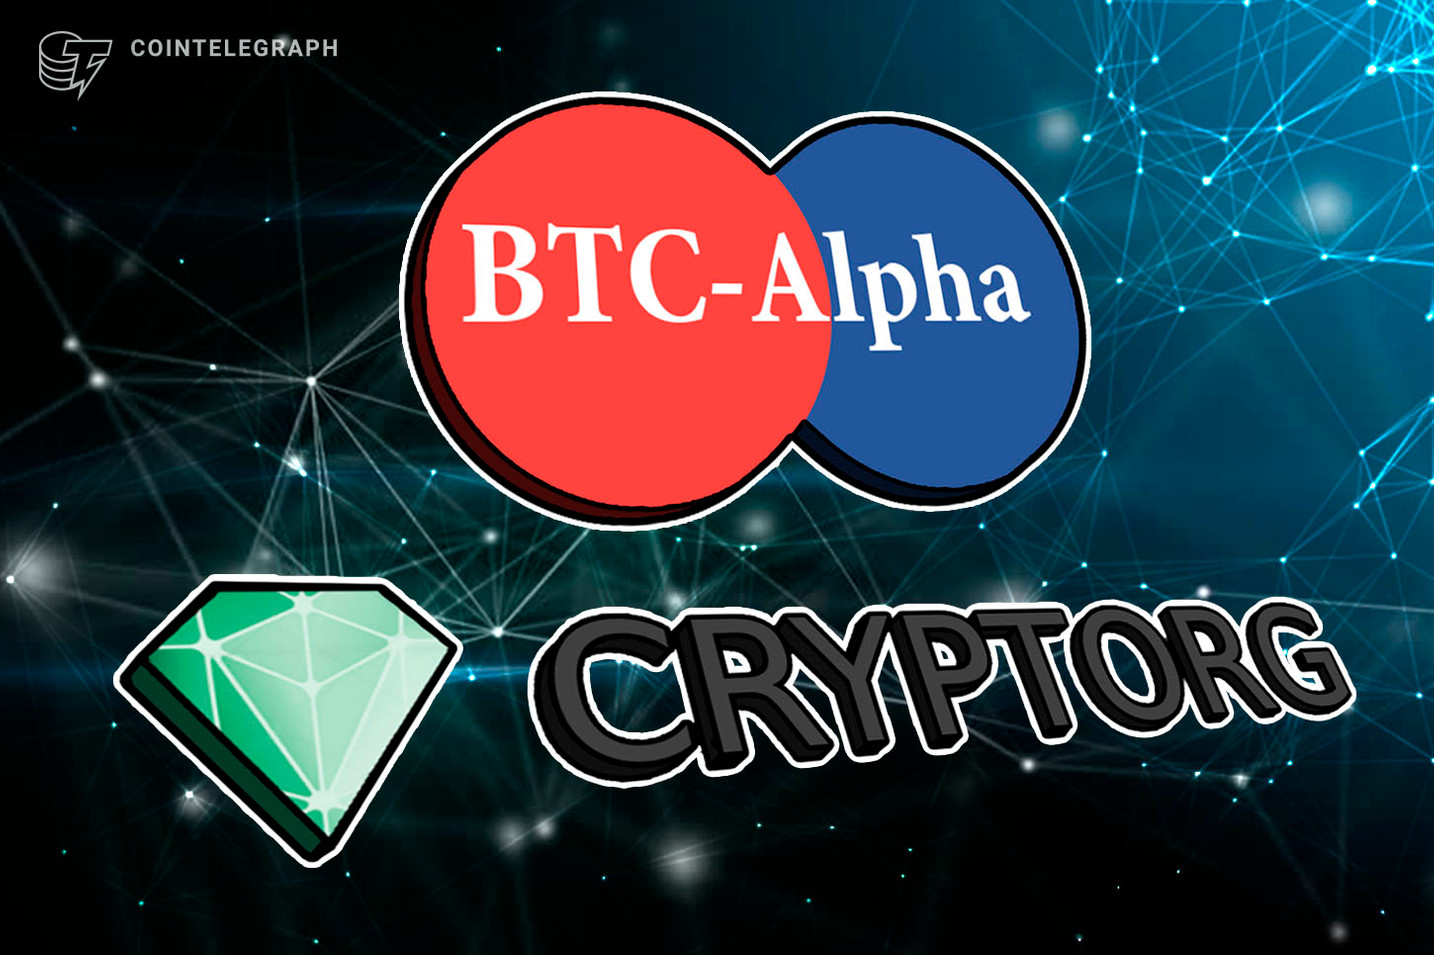 Cryptorg Token Was Listed on Cryptocurrency Exchange BTC-Alpha